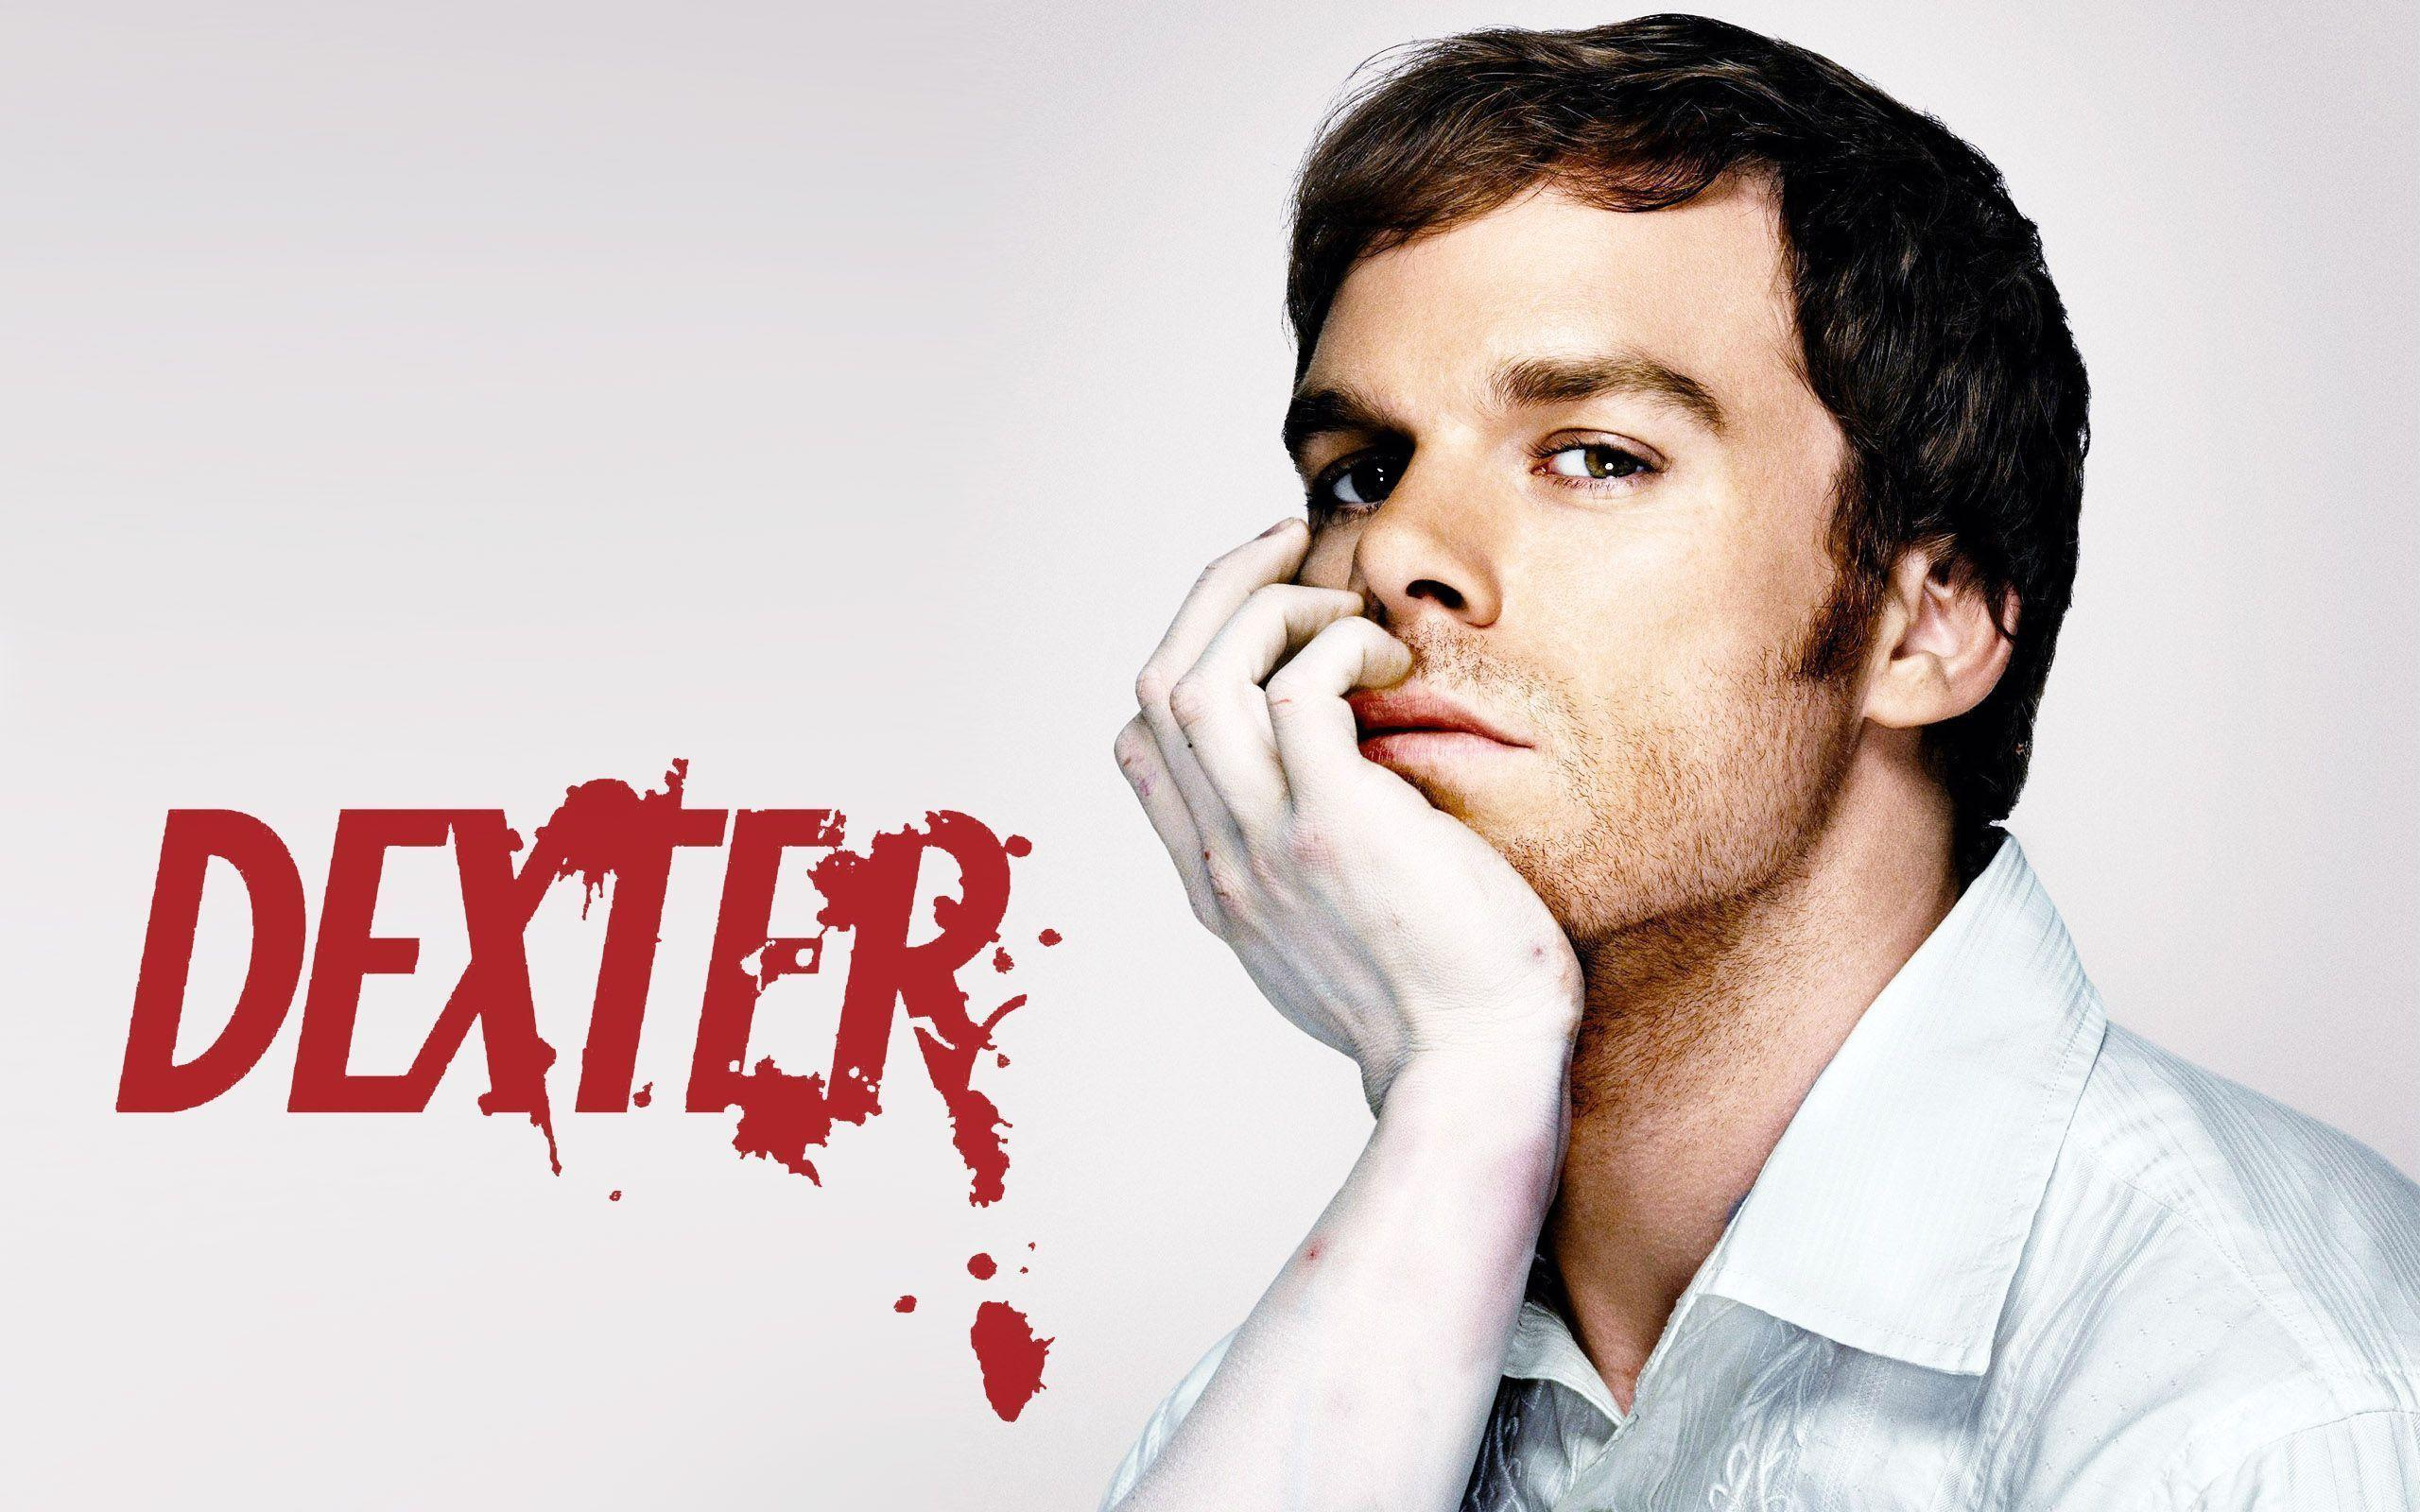 dexter iphone wallpaper - photo #41